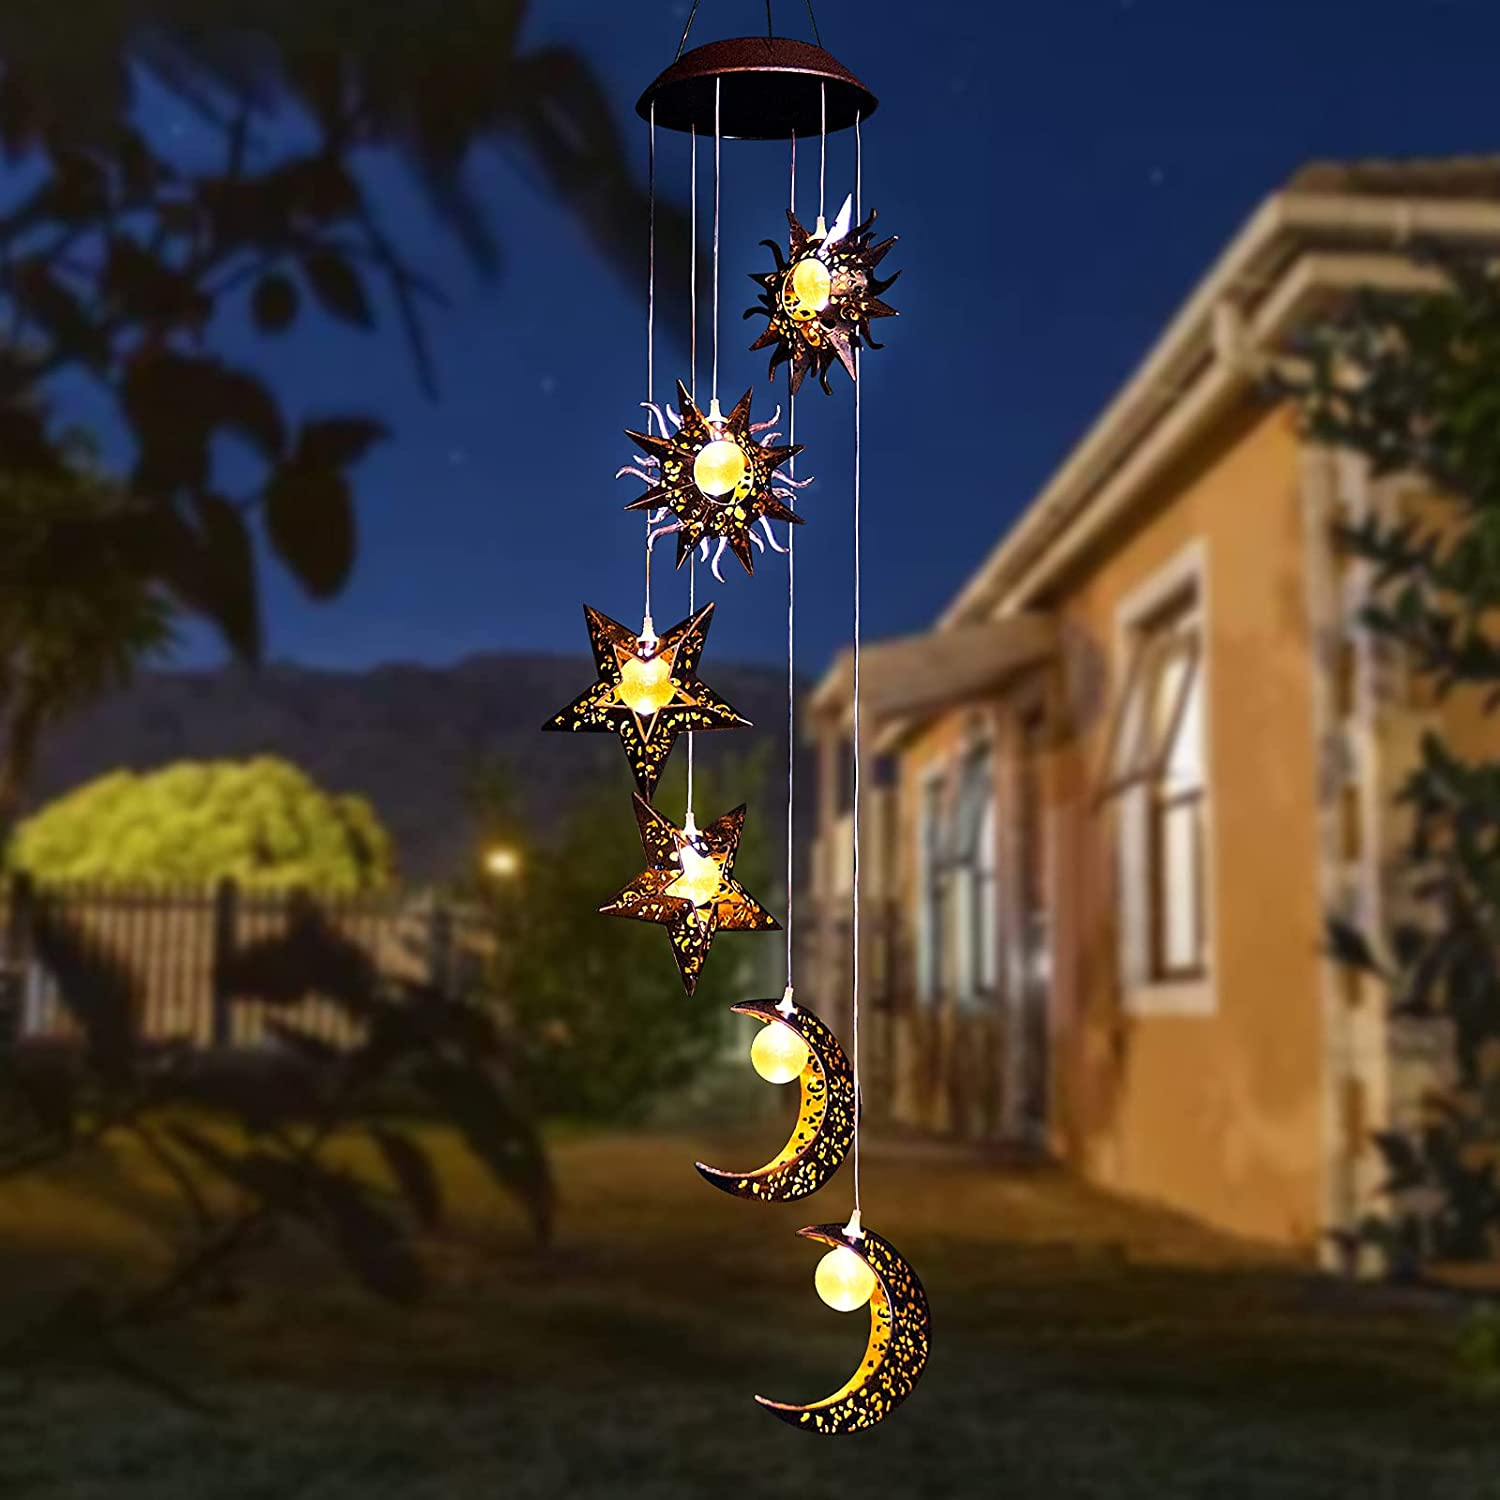 Tryme Solar Wind Chimes with Sun Moon Star Solar Powered Wind Chimes Warm LED Windchimes Hanging Outdoor Lights Unique Decor Gifts for Wife Mom Grandma Neighbors